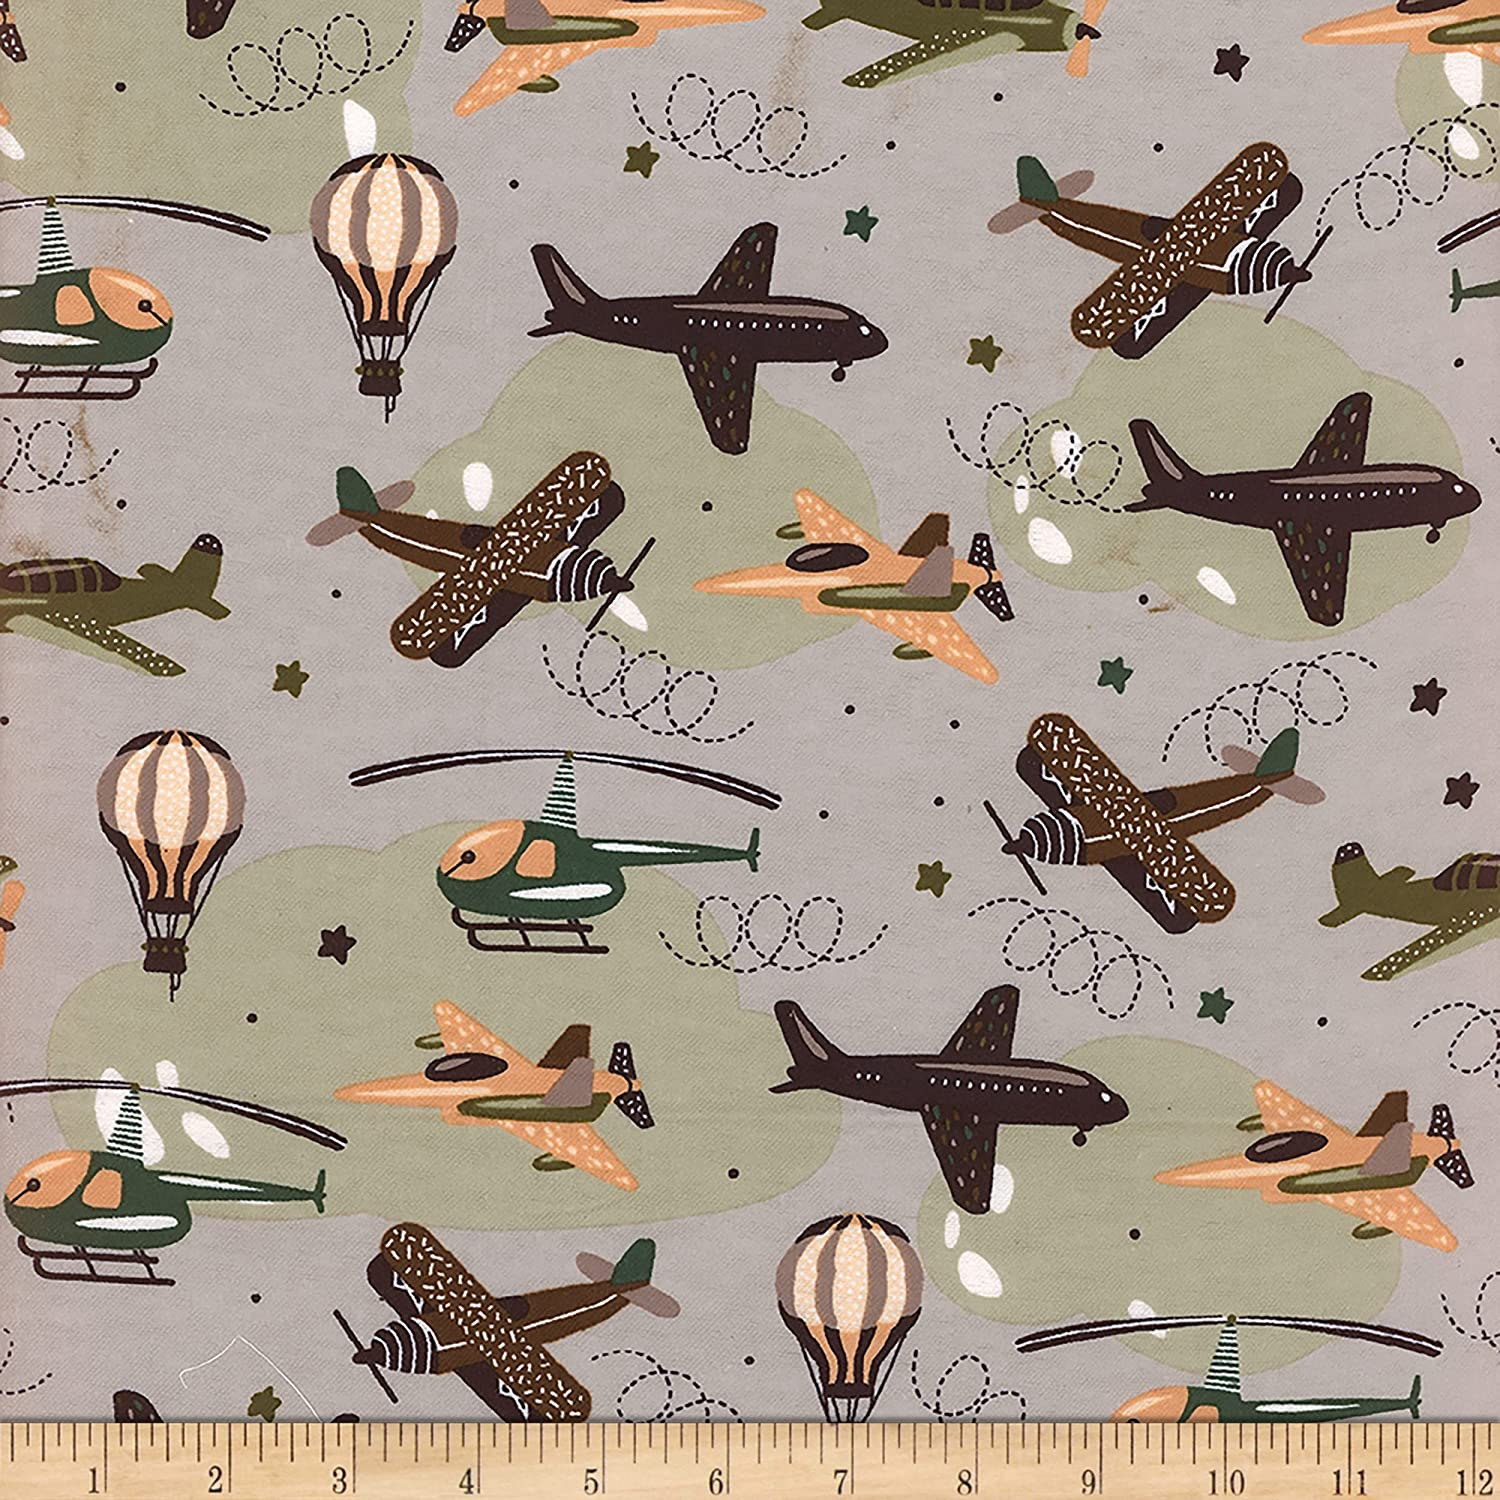 Direct stock discount Flannel Multi Airplanes 2021 new Green Fabric the by Yard